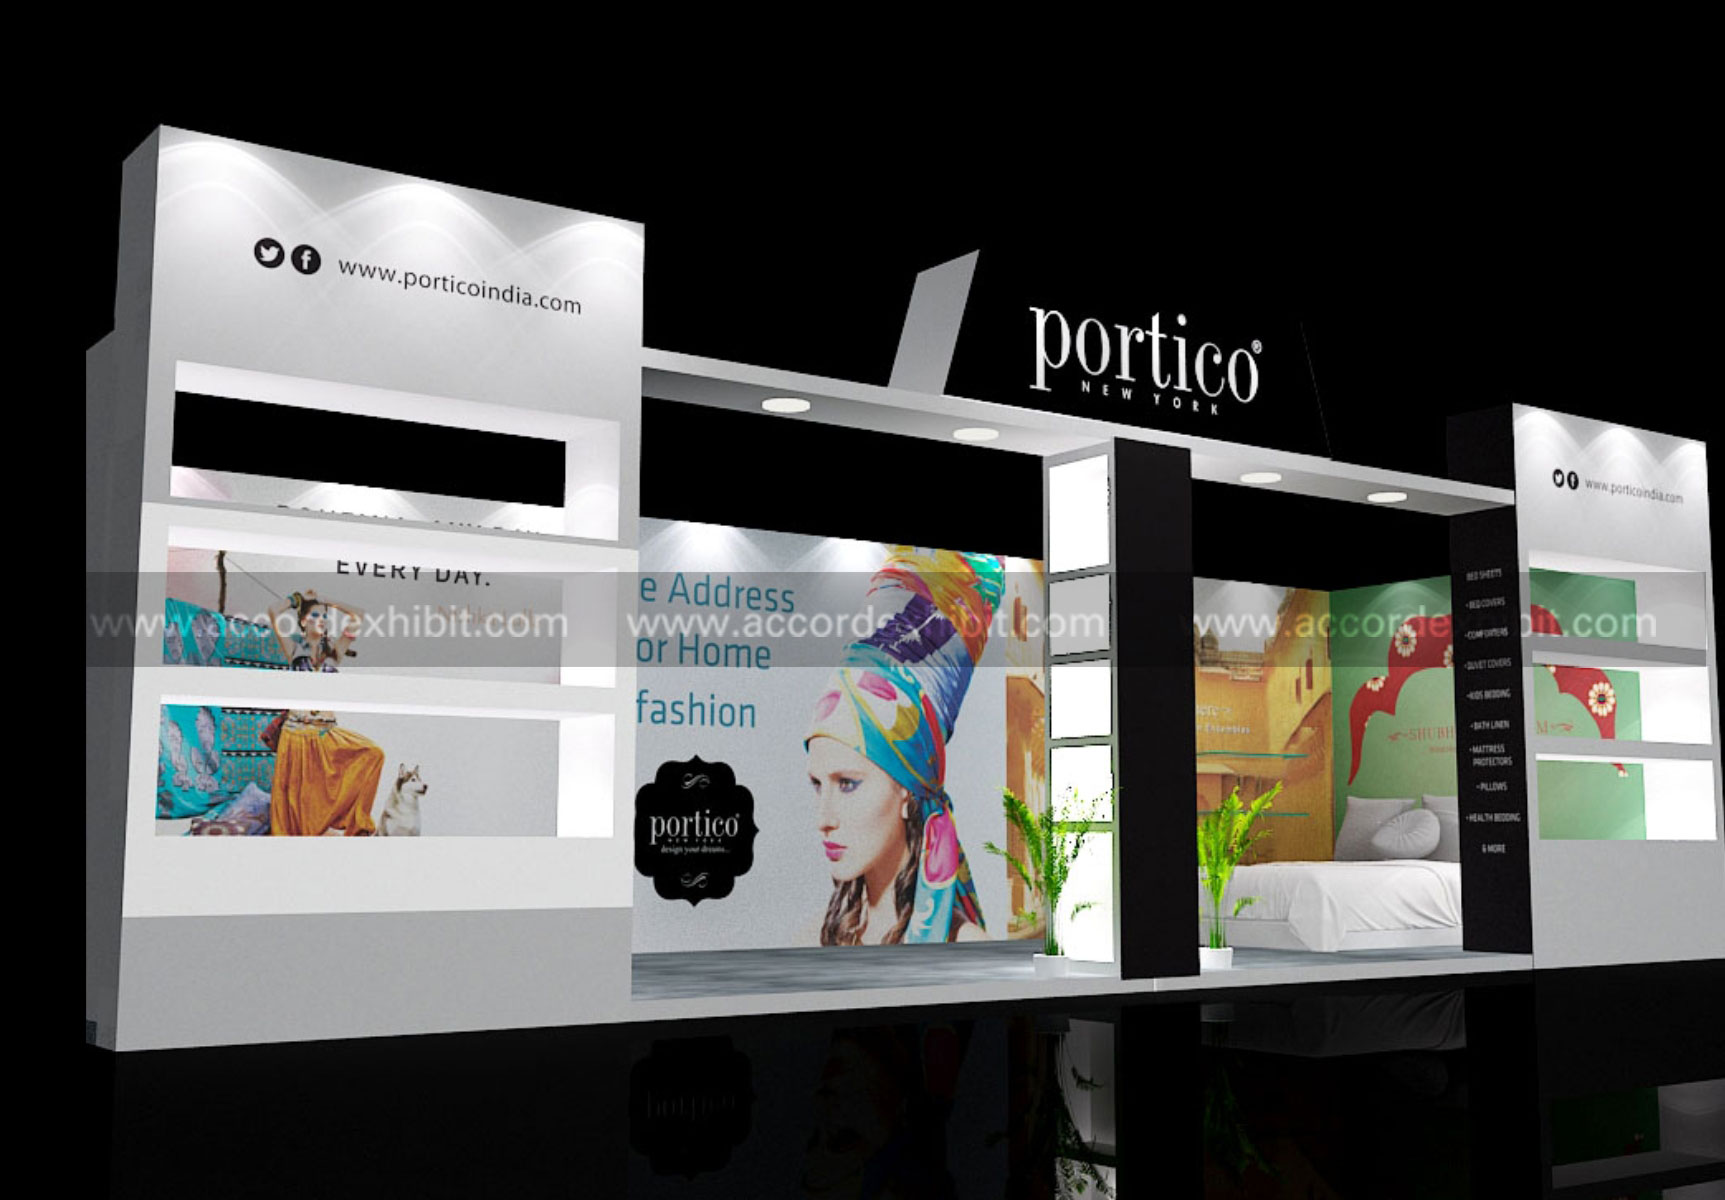 Exhibition Stall for Potico India